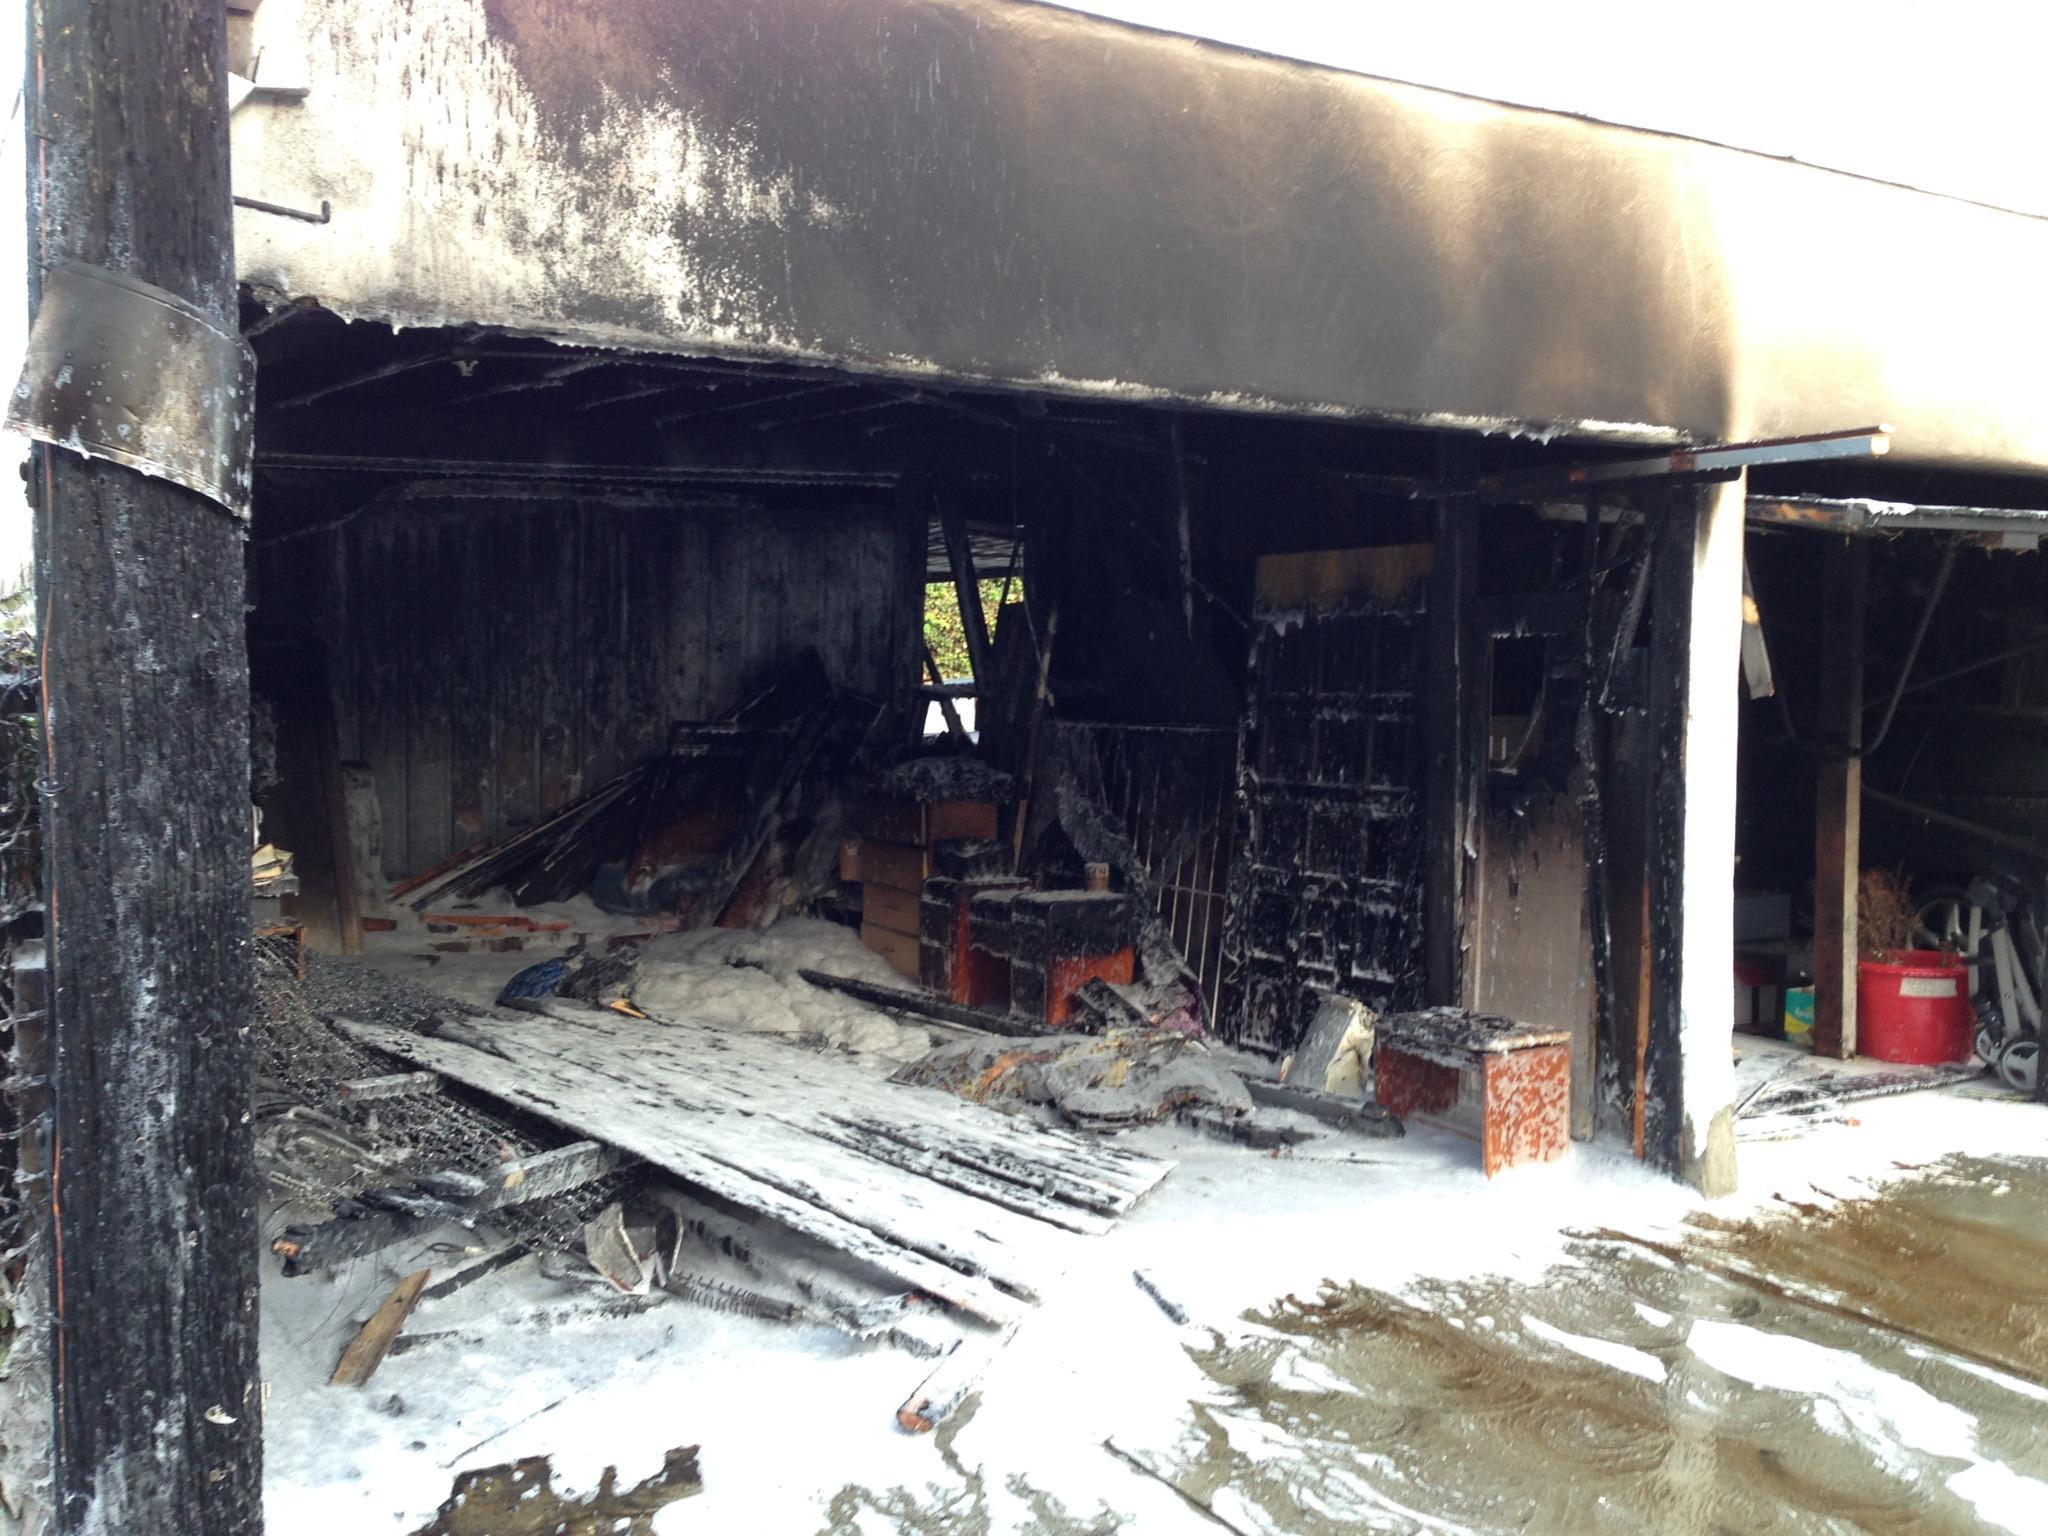 The latest possible arson fire, which occurred at 4:50 a.m. on Saturday, April 19, 2014, involved a mattress and it spread to a carport in the 400 block of East Harvard Street in Glendale.